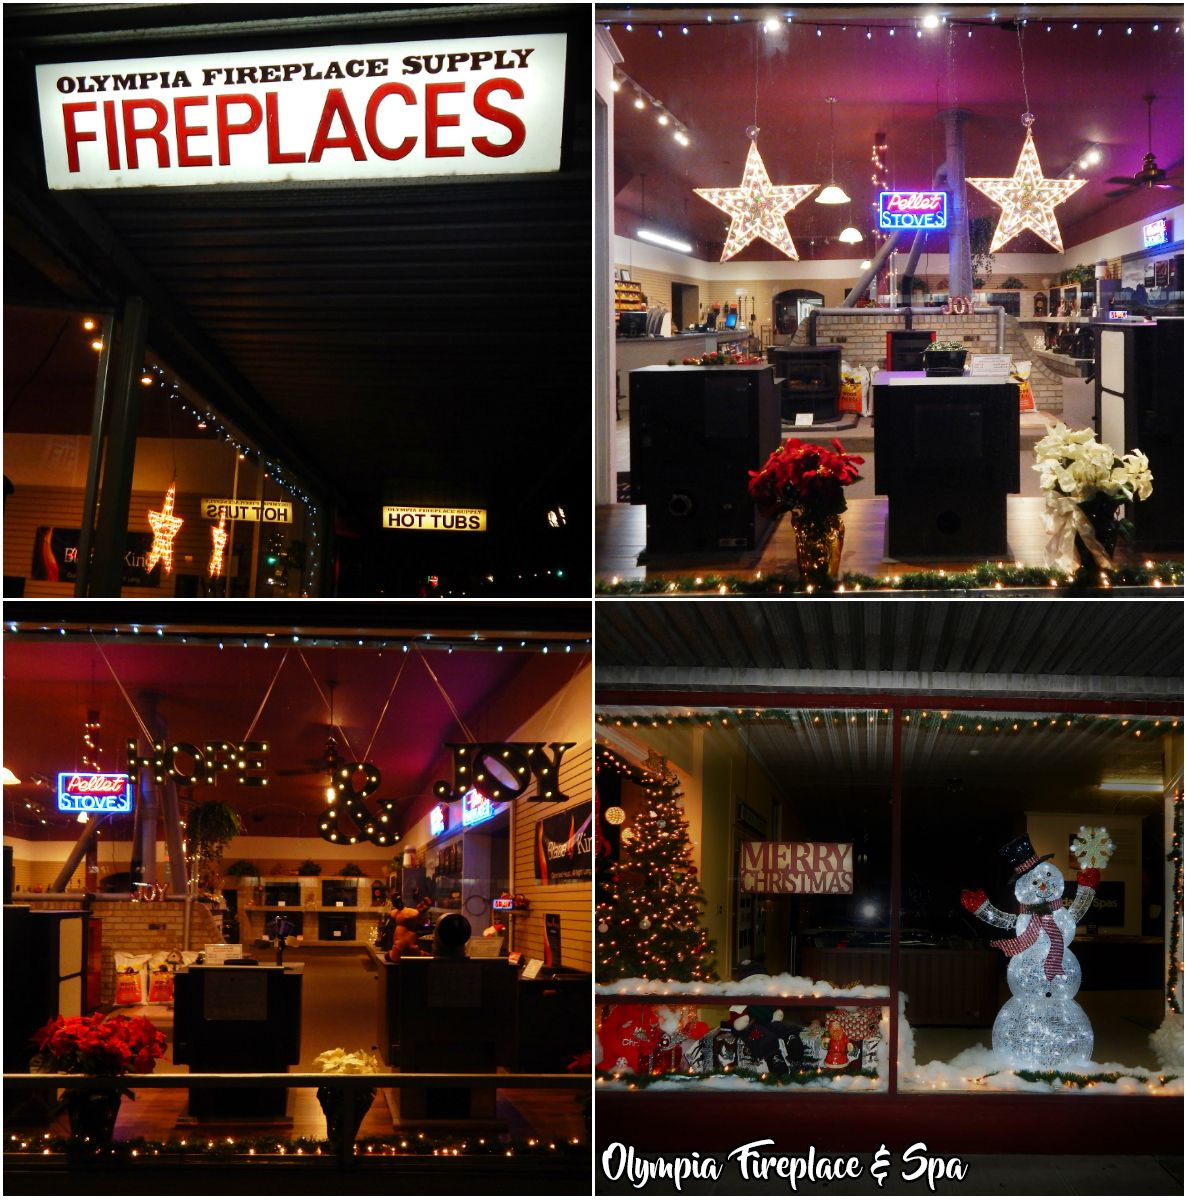 Oly Fireplace & Spa 506 4th Ave E, Olympia, WA 98501 | Olympia ...